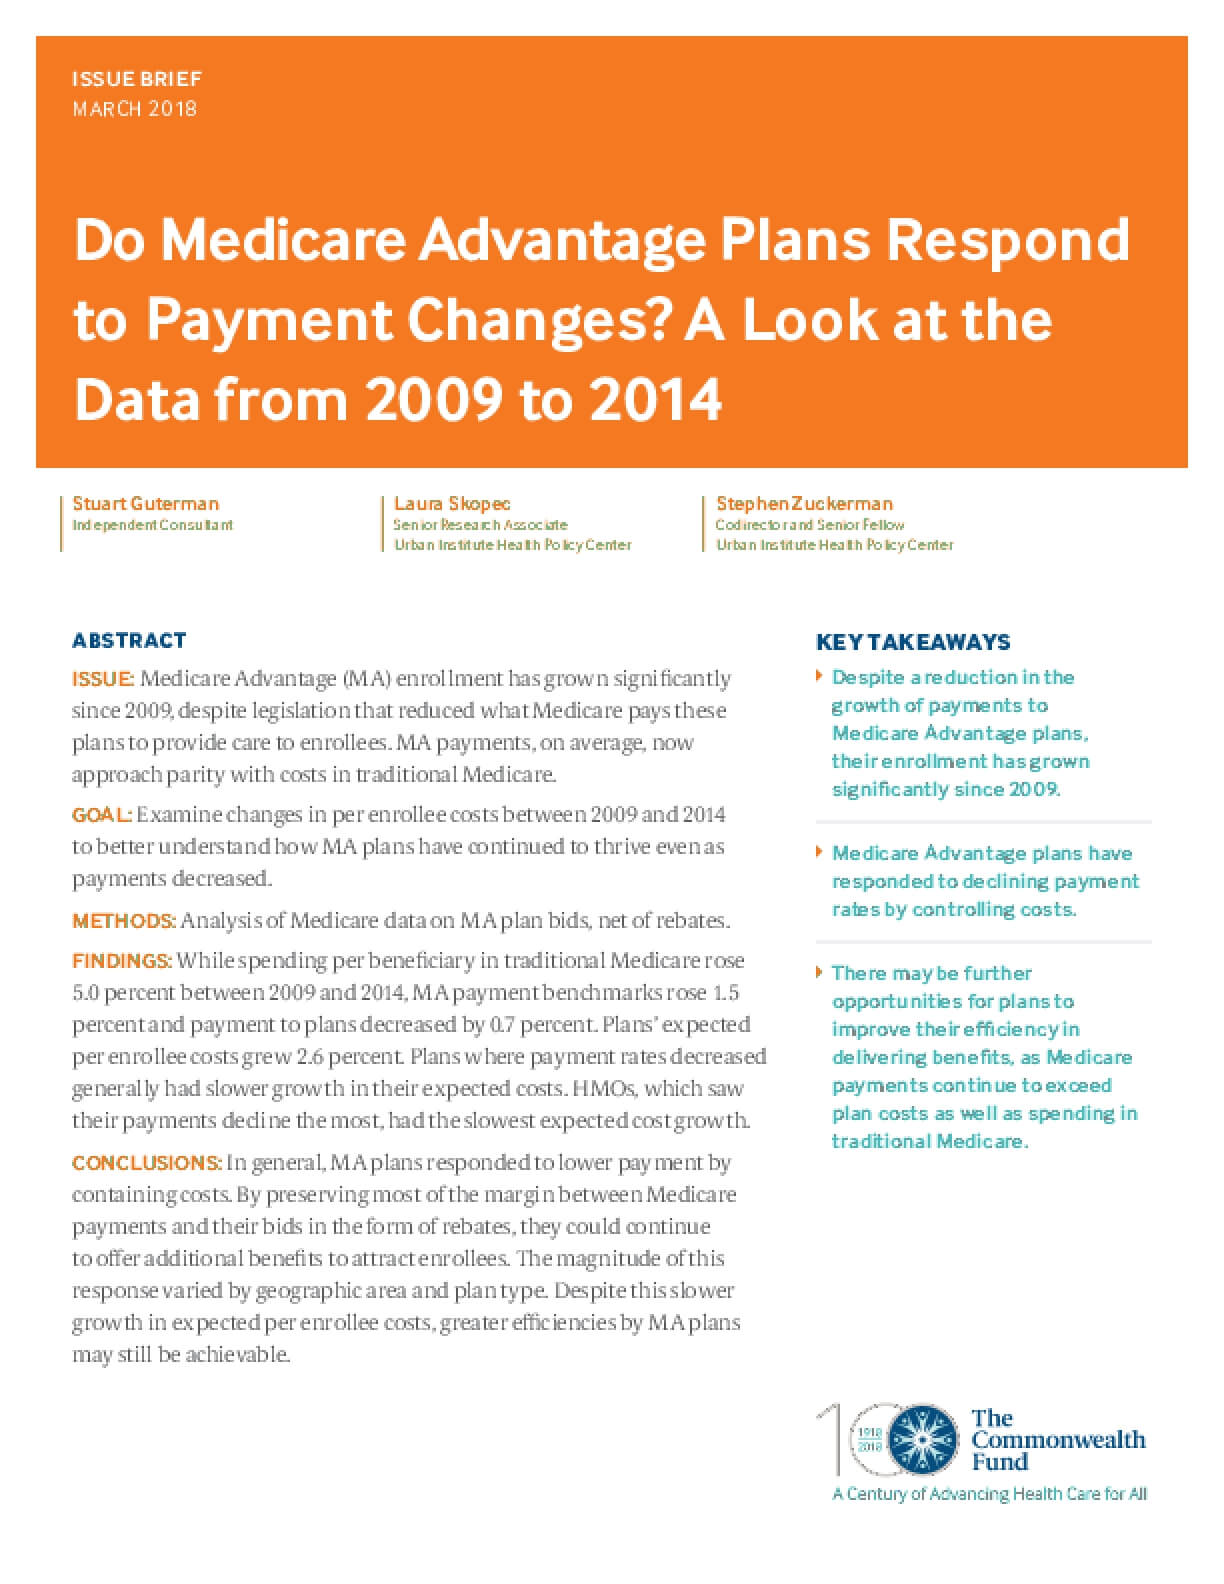 Do Medicare Advantage Plans Respond to Payment Changes? A Look at the Data from 2009 to 2014